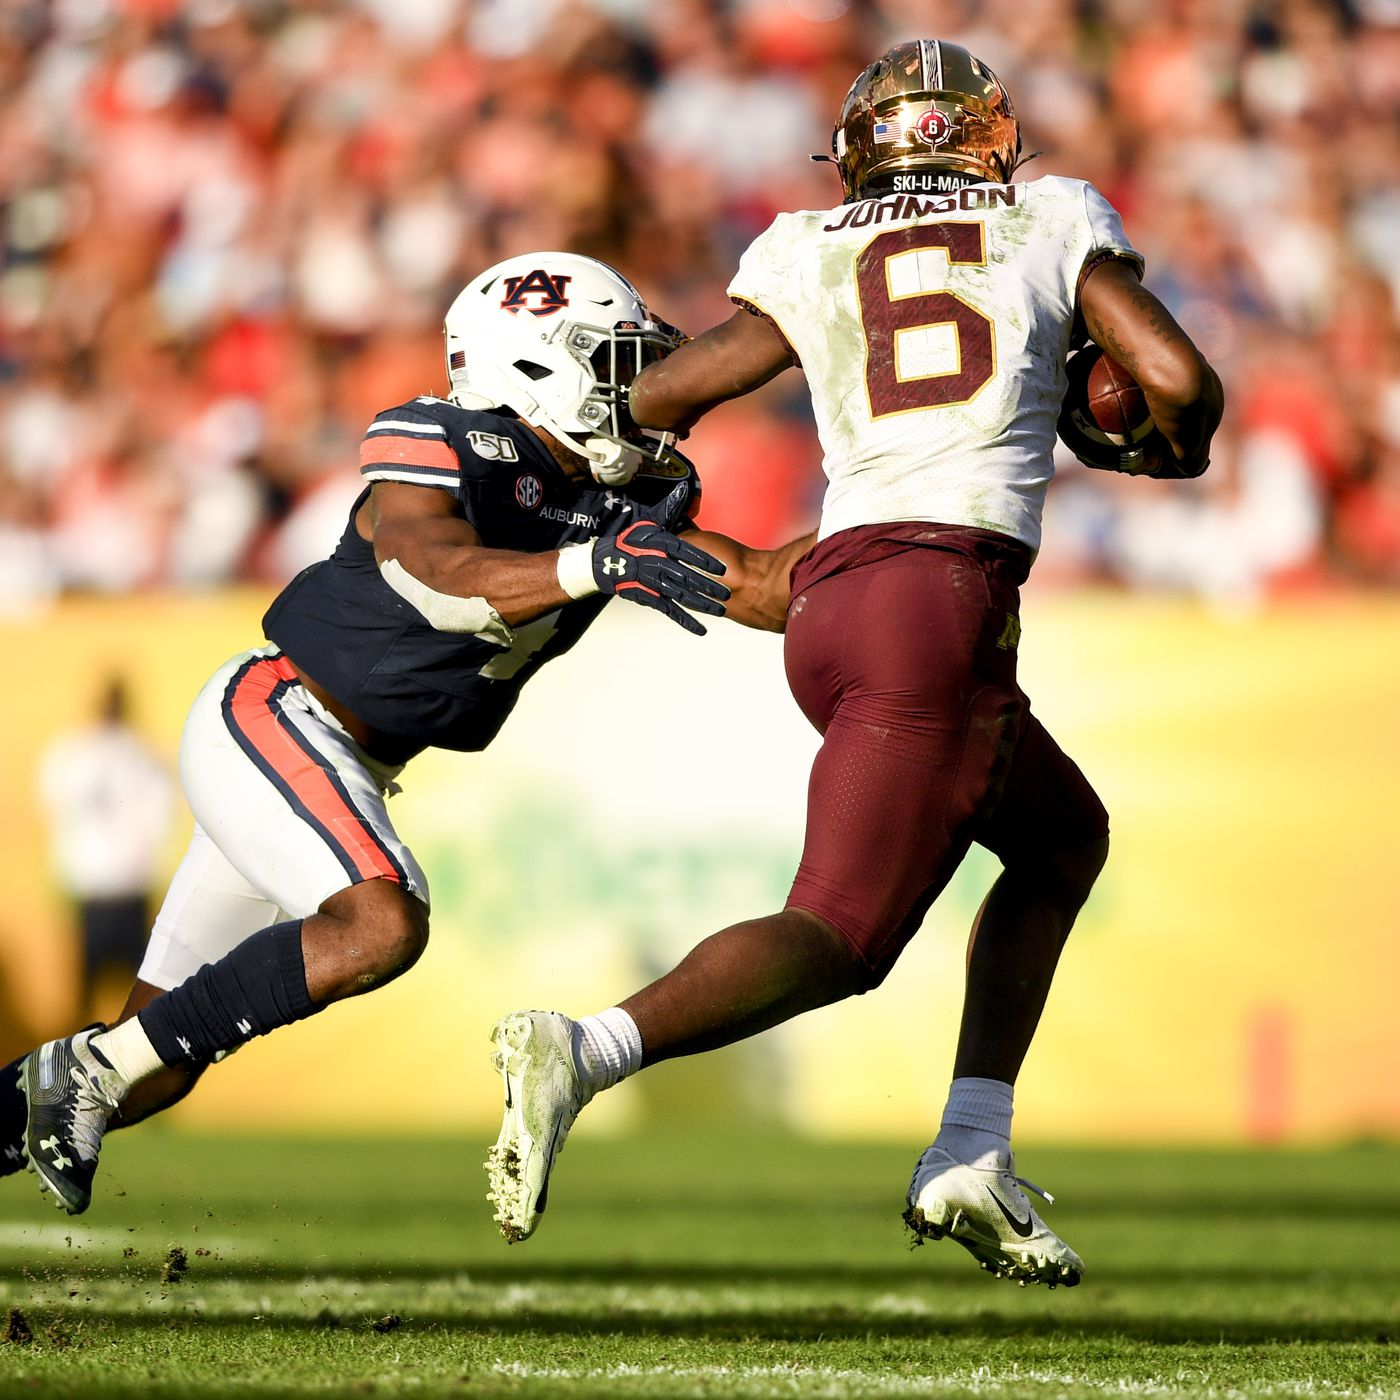 Nfl Draft Tyler Johnson Selected By The Tampa Bay Bucs In 5th Round The Daily Gopher